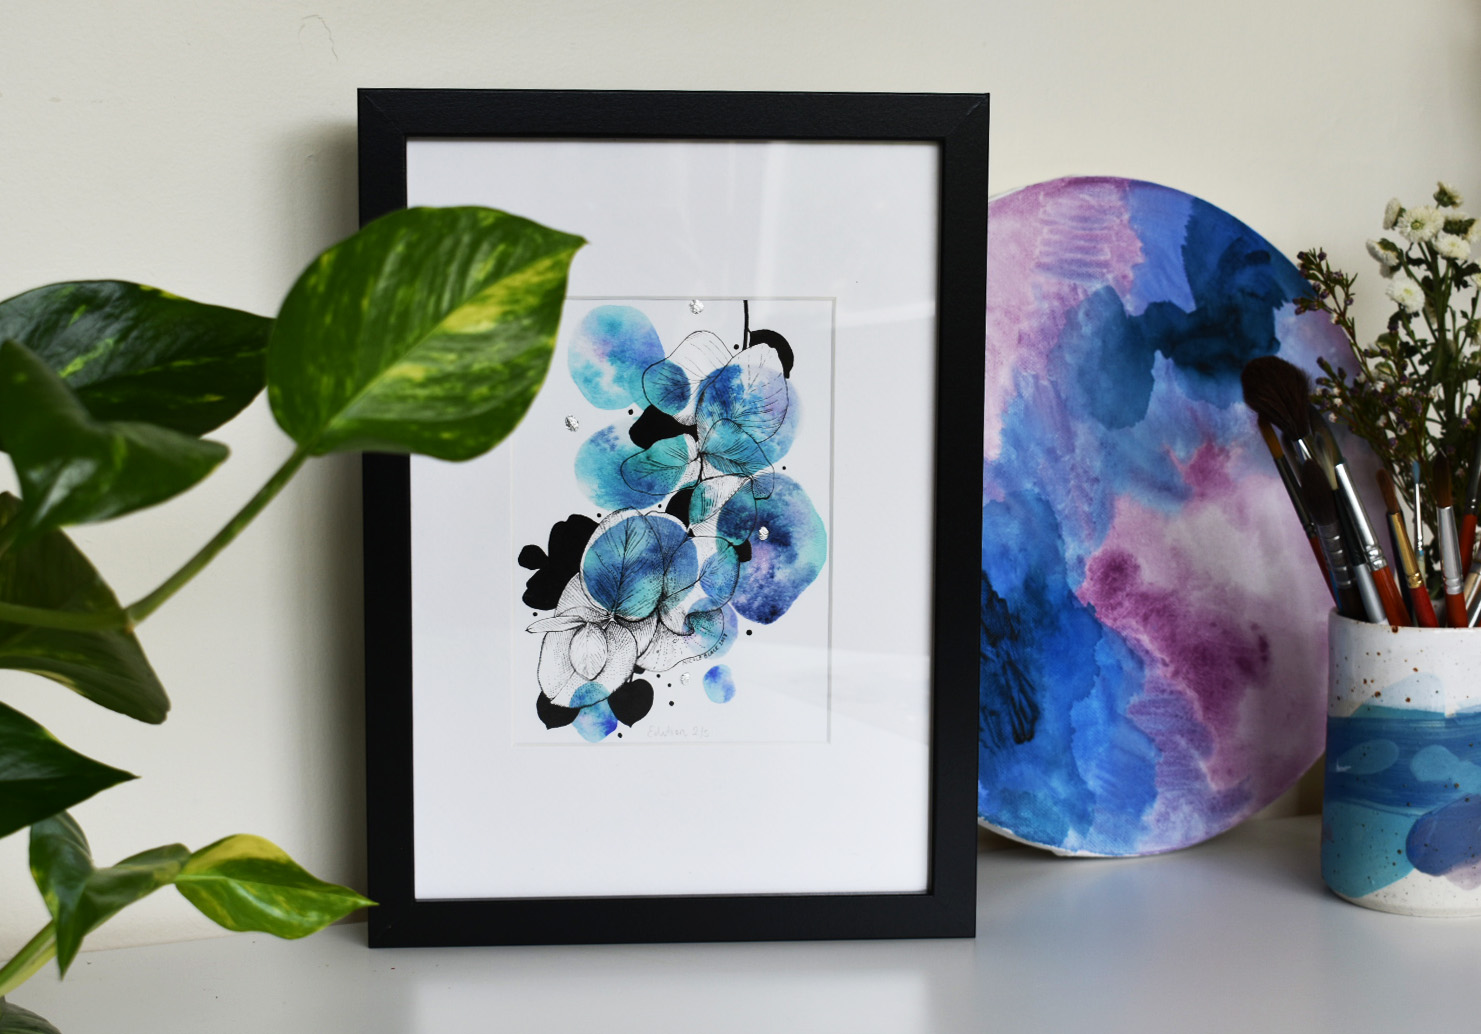 Shop new limited edition prints and artwork -